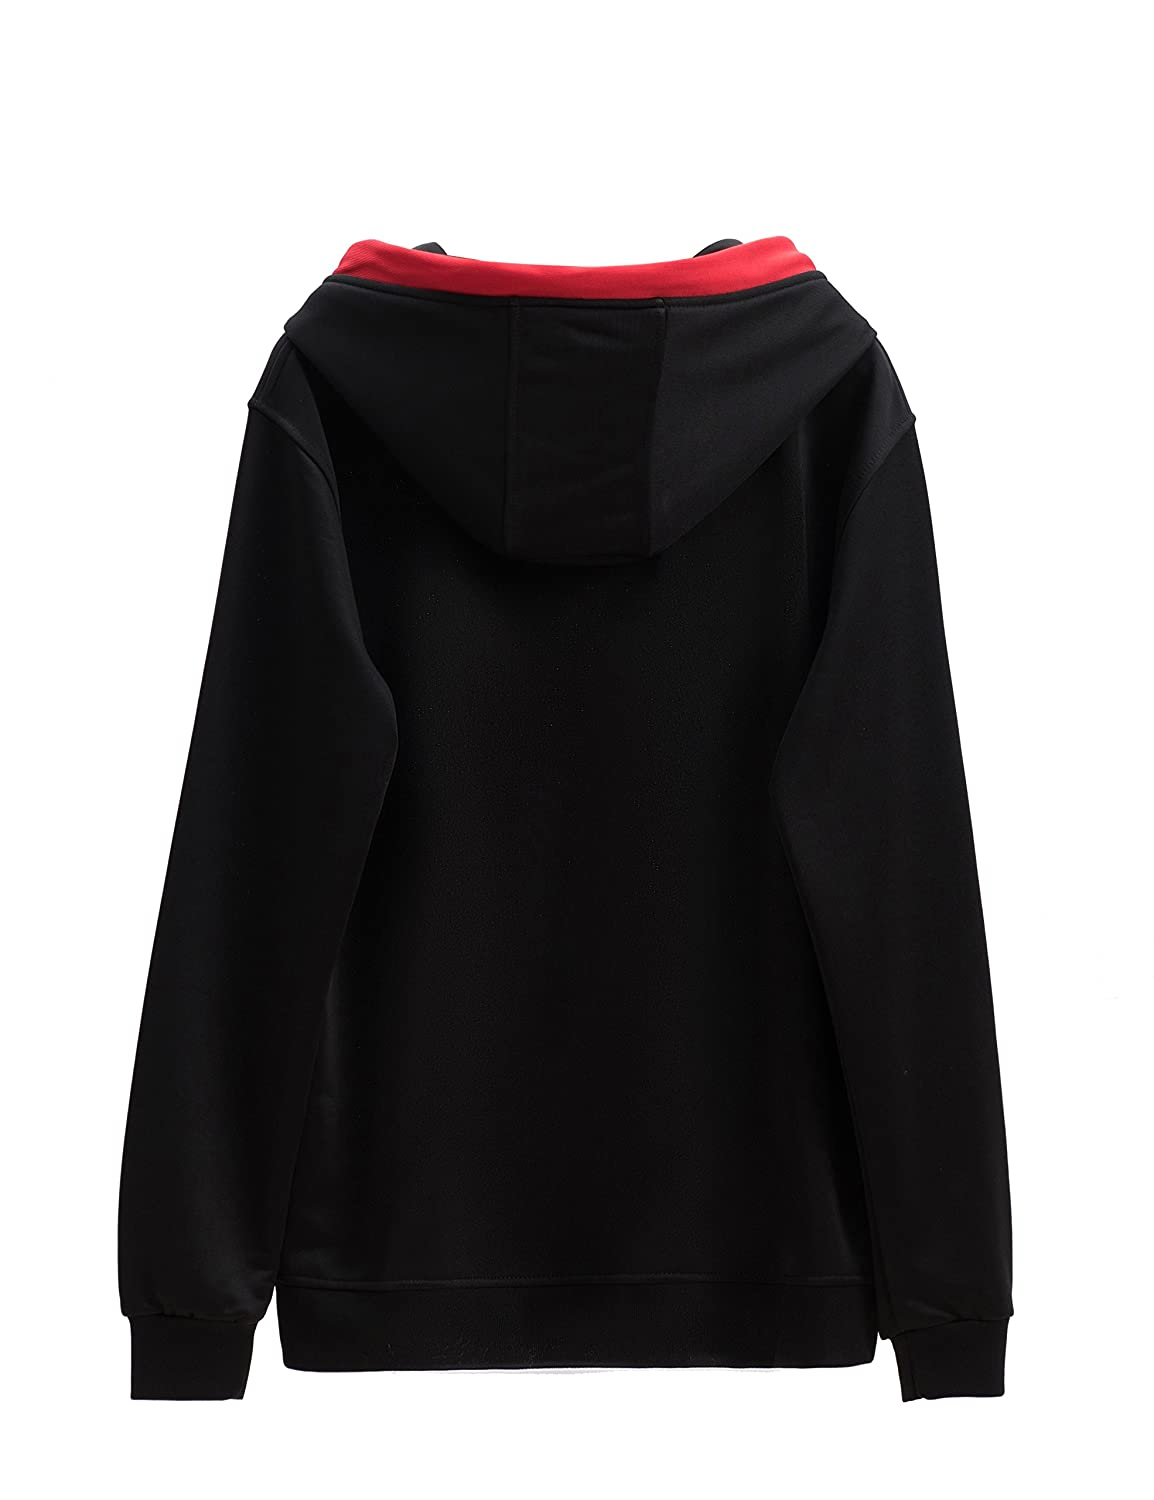 46506b11ee98 Aibrou Sweat Capuche Femme Pull Sweat Hiver Sweat à Capuche Chic Top Cou  Rond Manches Longues ...